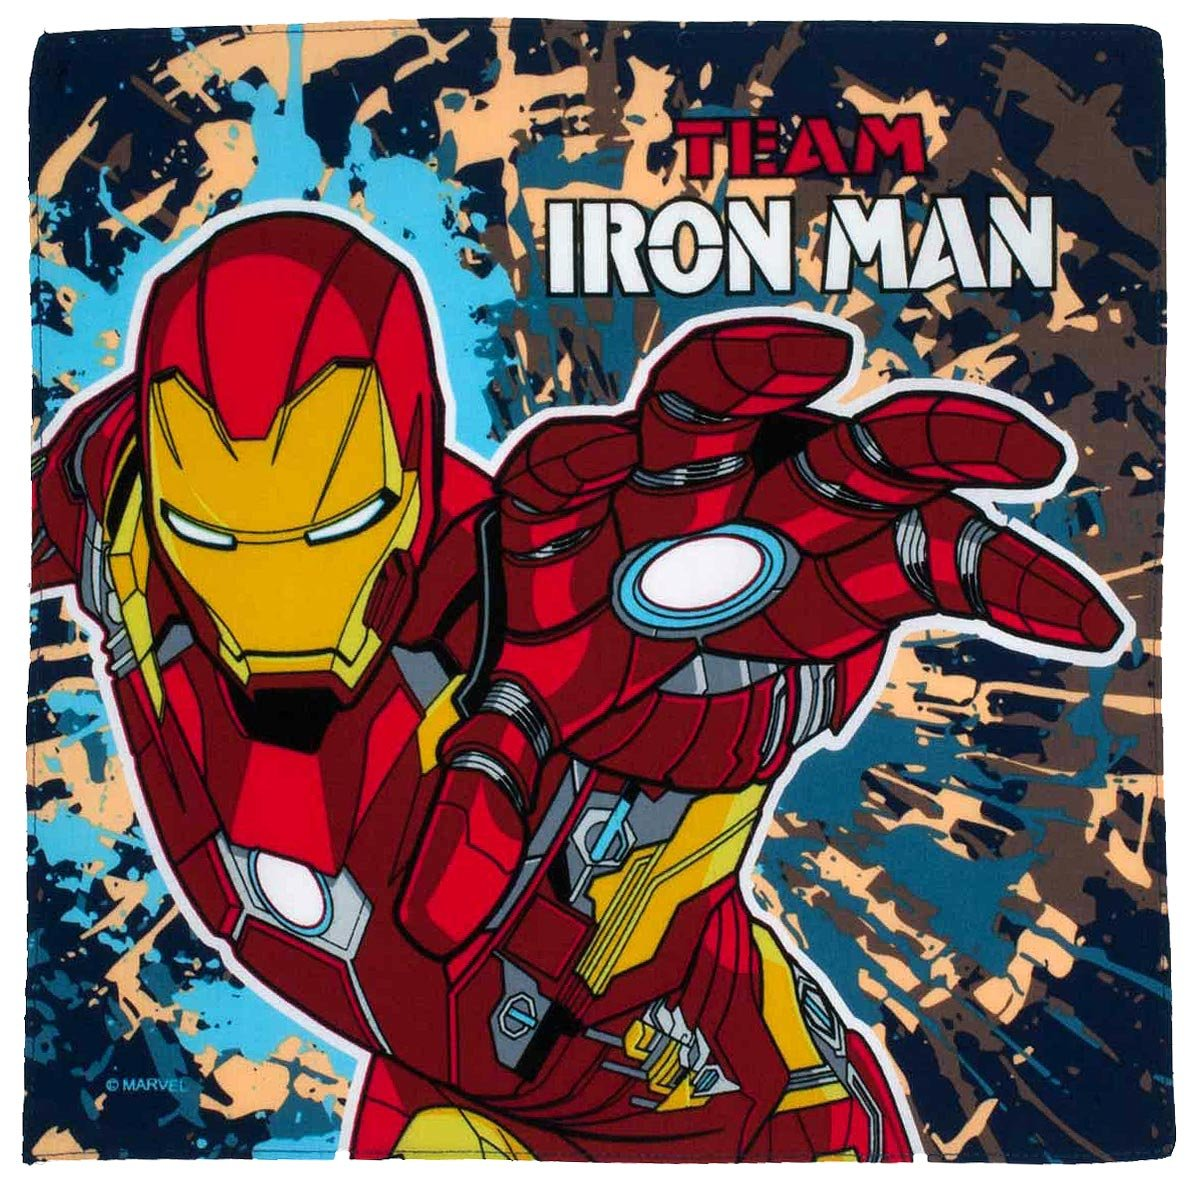 'Ironman' children' s handkerchiefs - 14' square - 3 units in a bag. Merrysquare